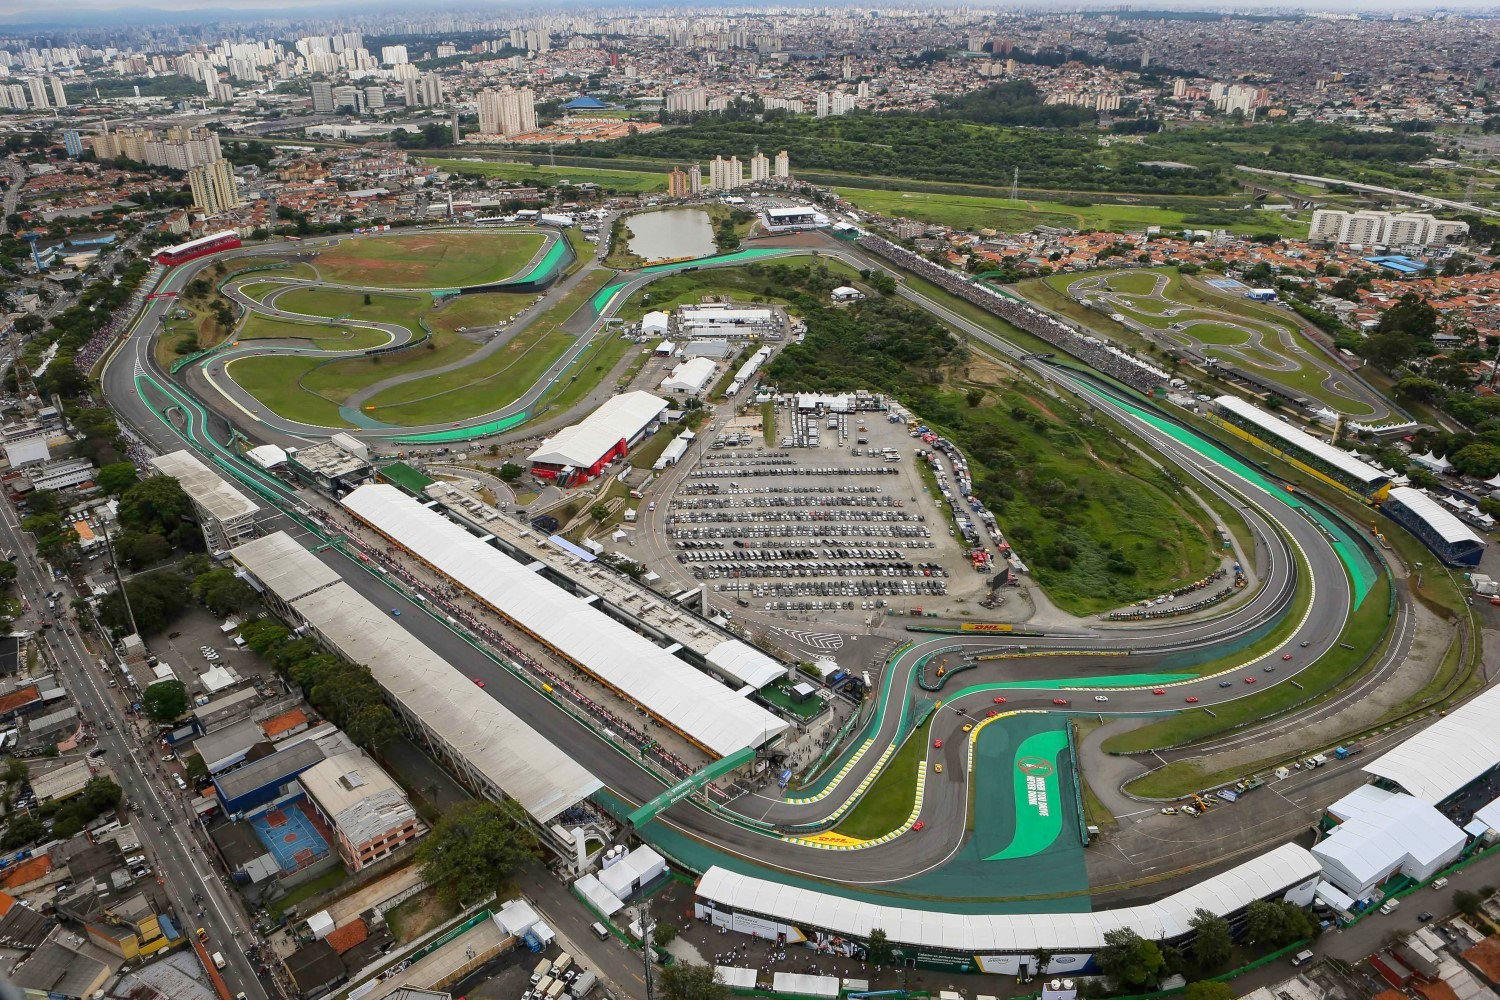 An alarming number of F1 team members were mugged this past weekend. Sao Paulo is a very unsafe place to go.